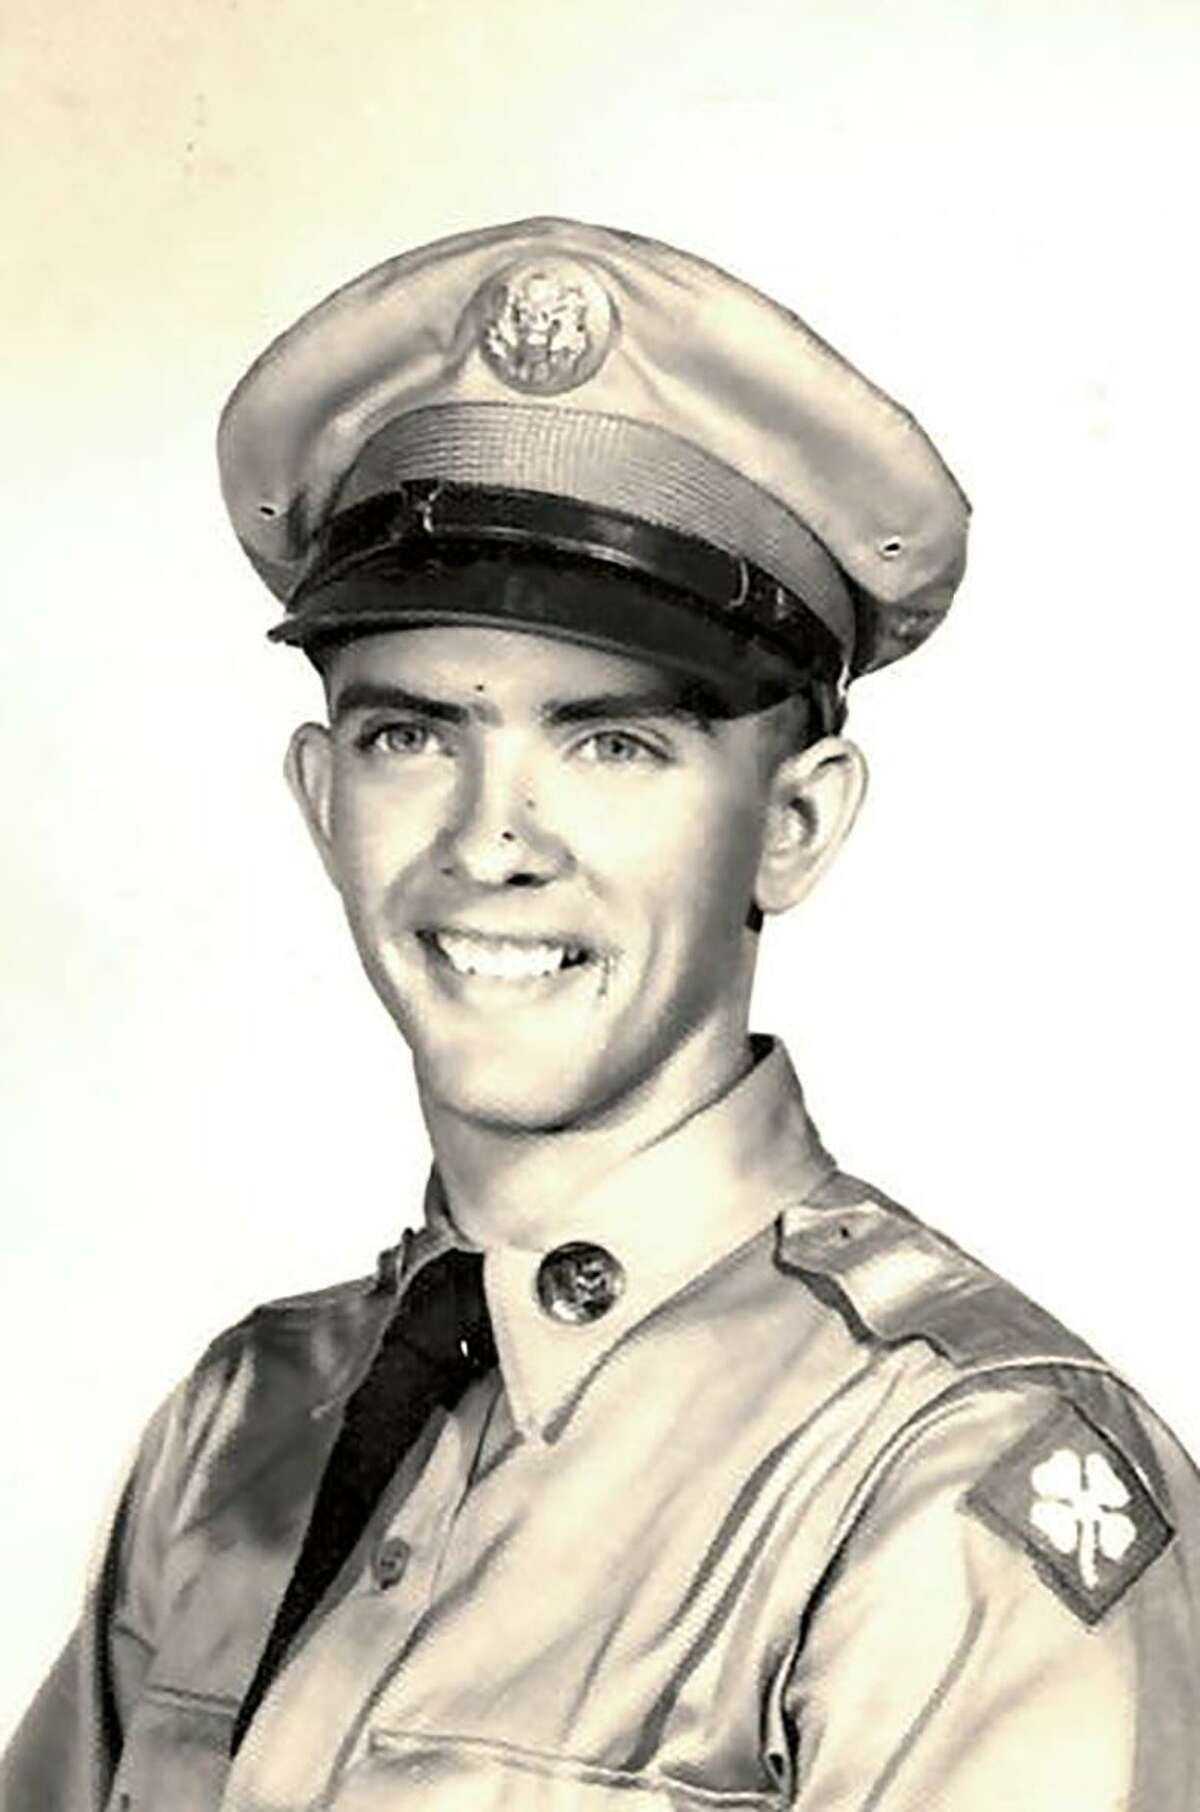 Si Harris was in the US Army from September 1954 to July 1956. He served in the 246th F.A. Missle BN (Corporal) division.